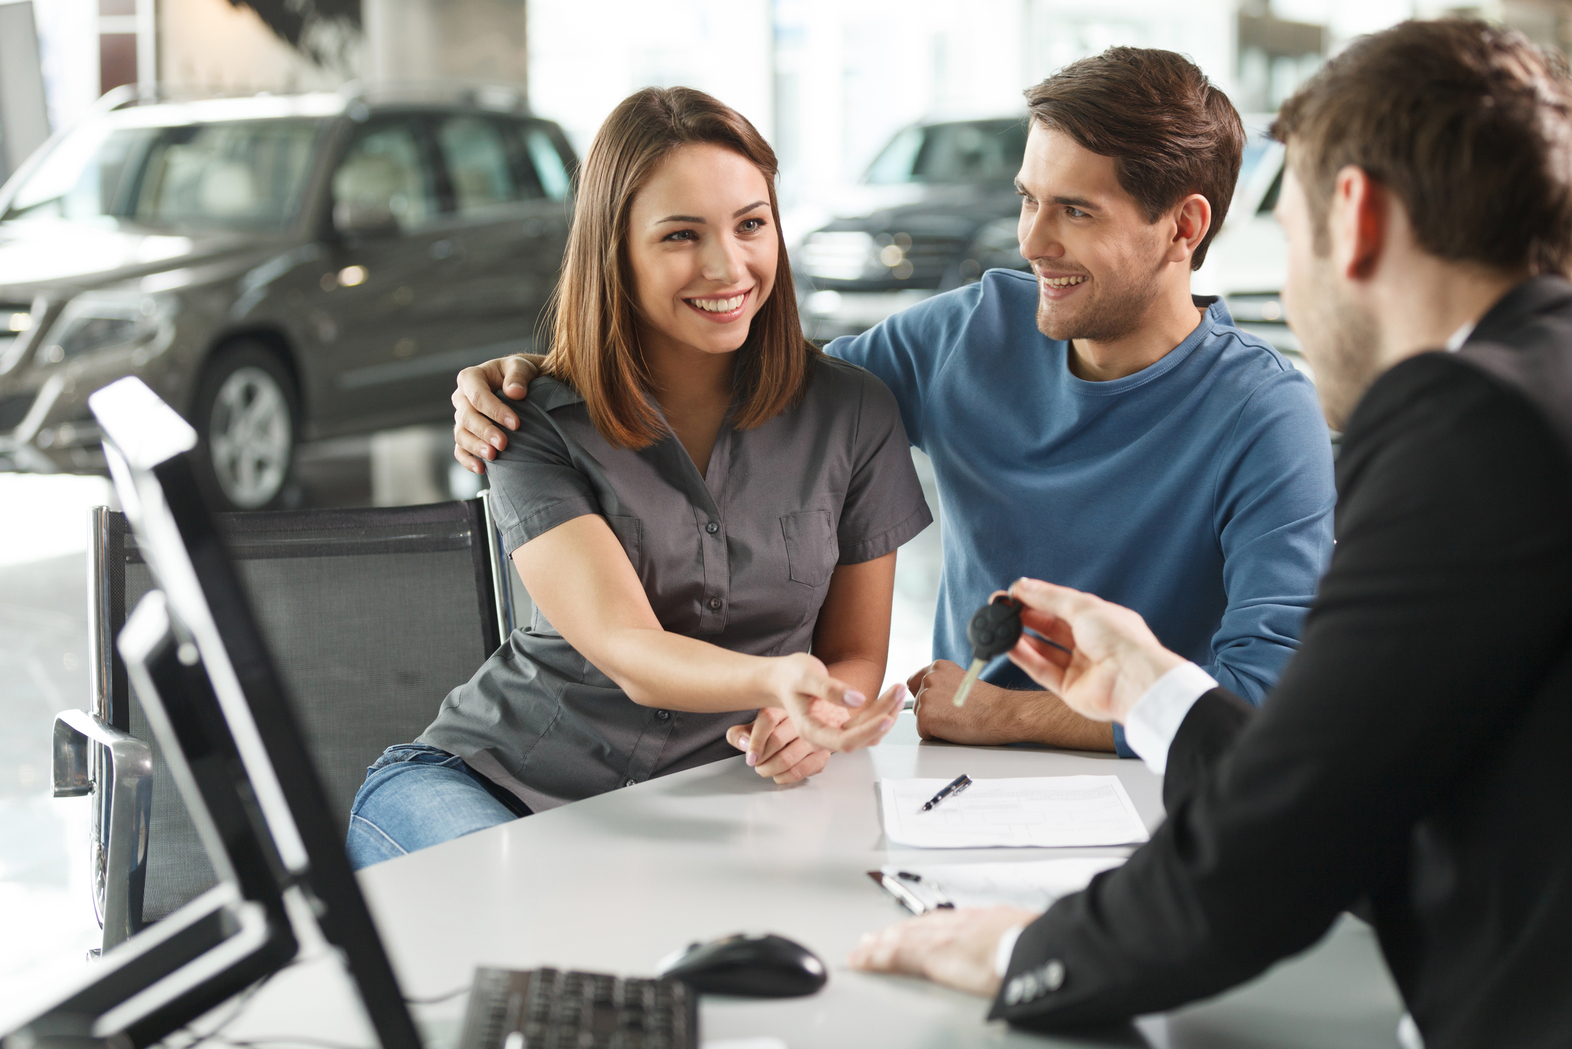 Catch the End of the Year Auto Sales